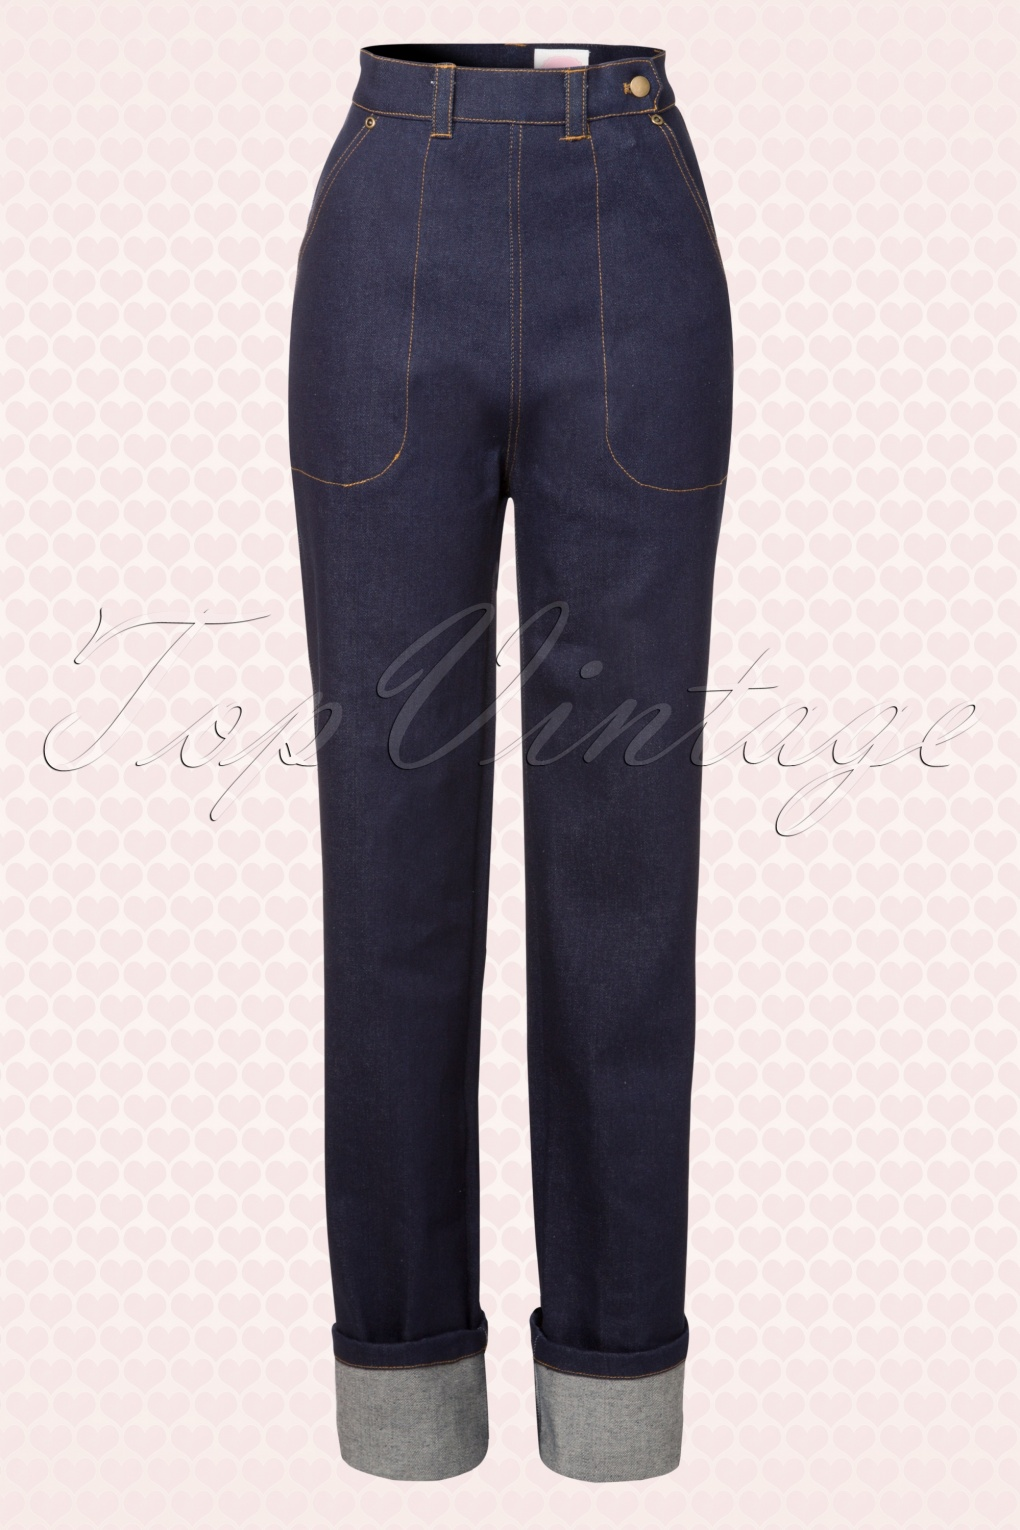 1950s Pants History for Women 50s Norma Jean Jeans in Navy £130.26 AT vintagedancer.com